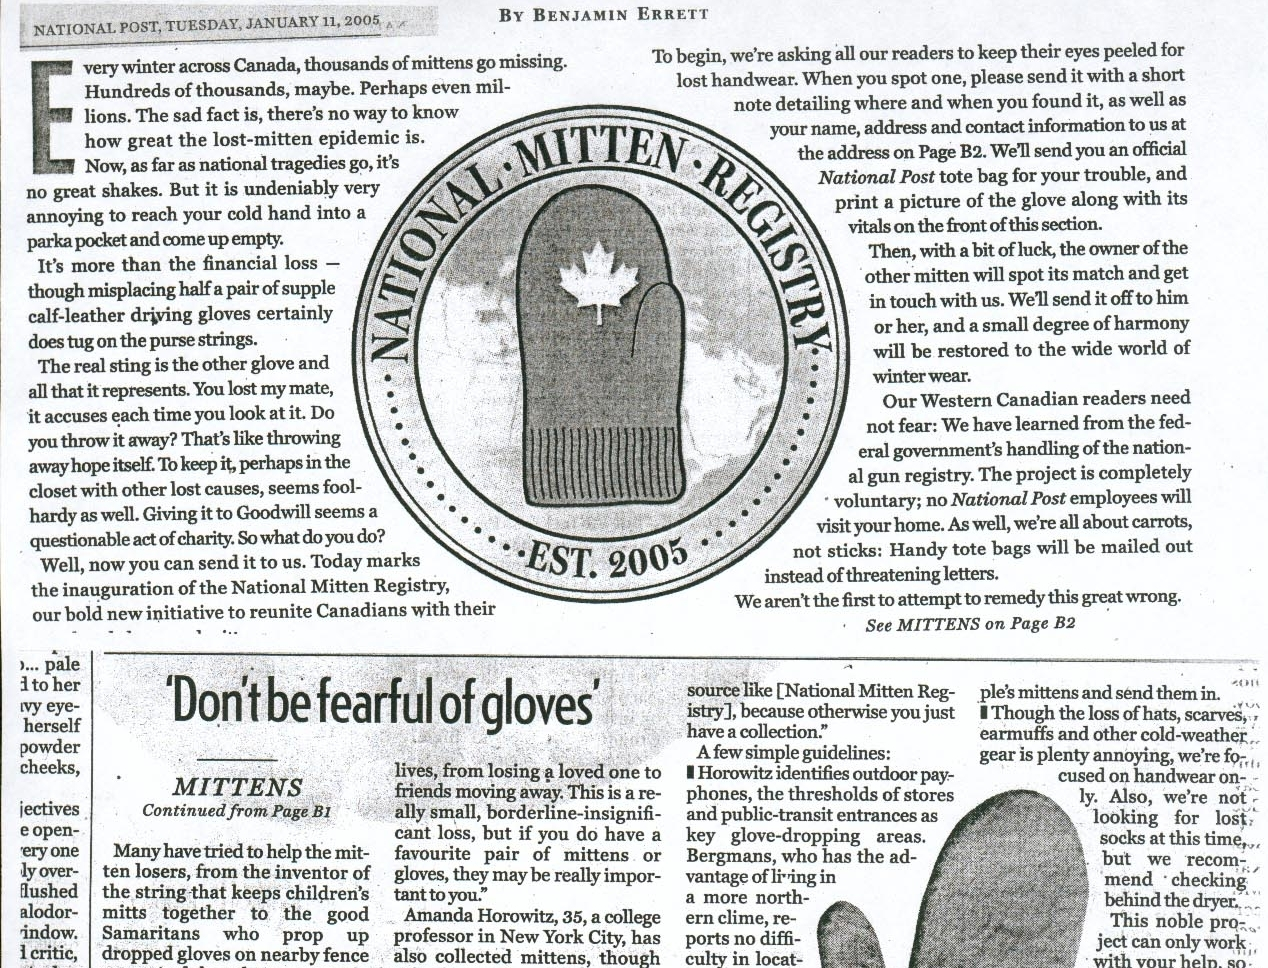 National Mitten Registry, by Benjamin Errett, National Post, January 2005